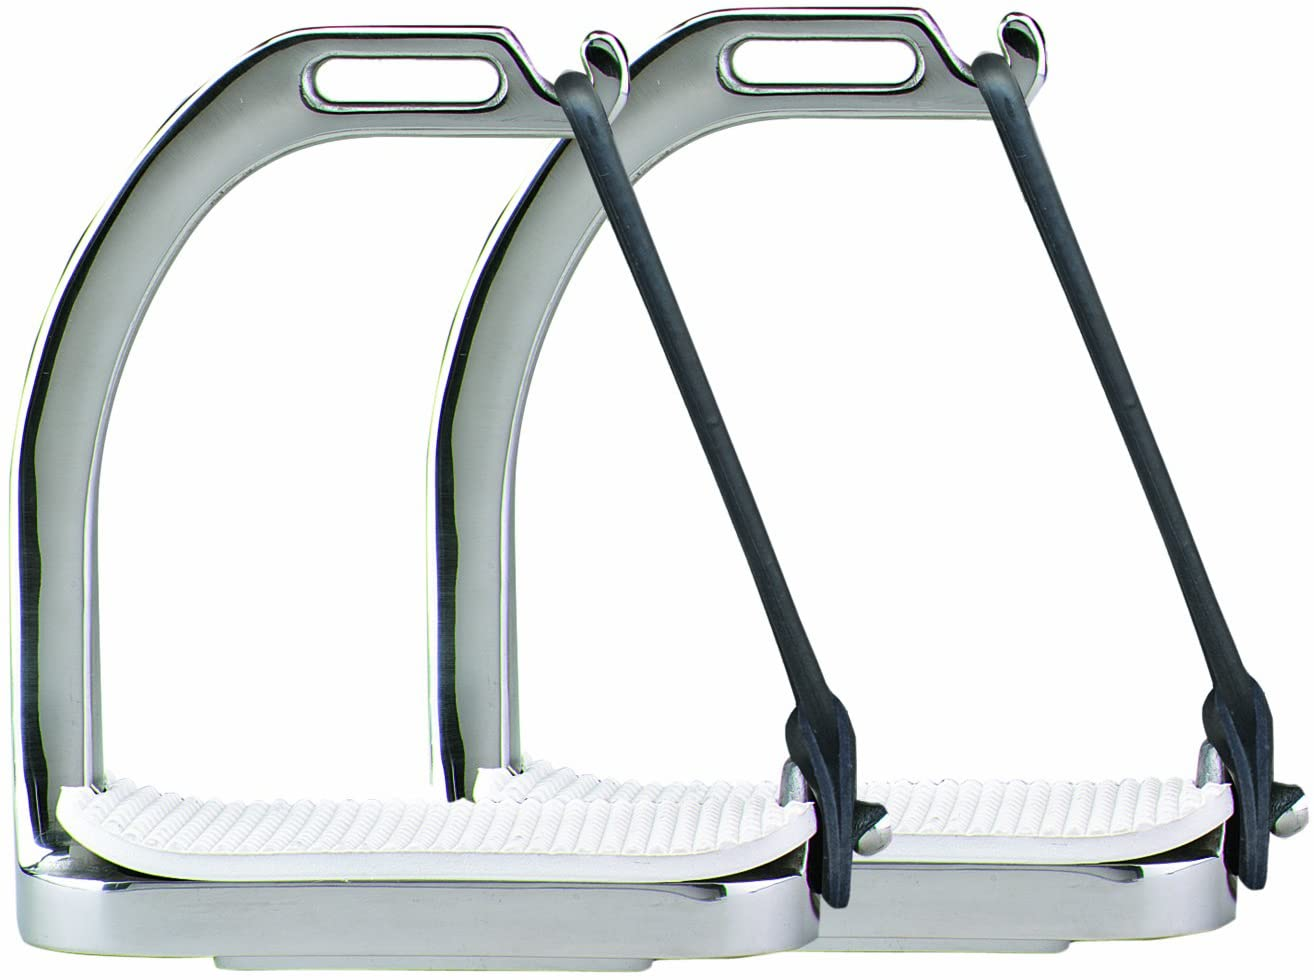 Perri's Ss Fillis Safety Stirrup Iron, Stainless Steel